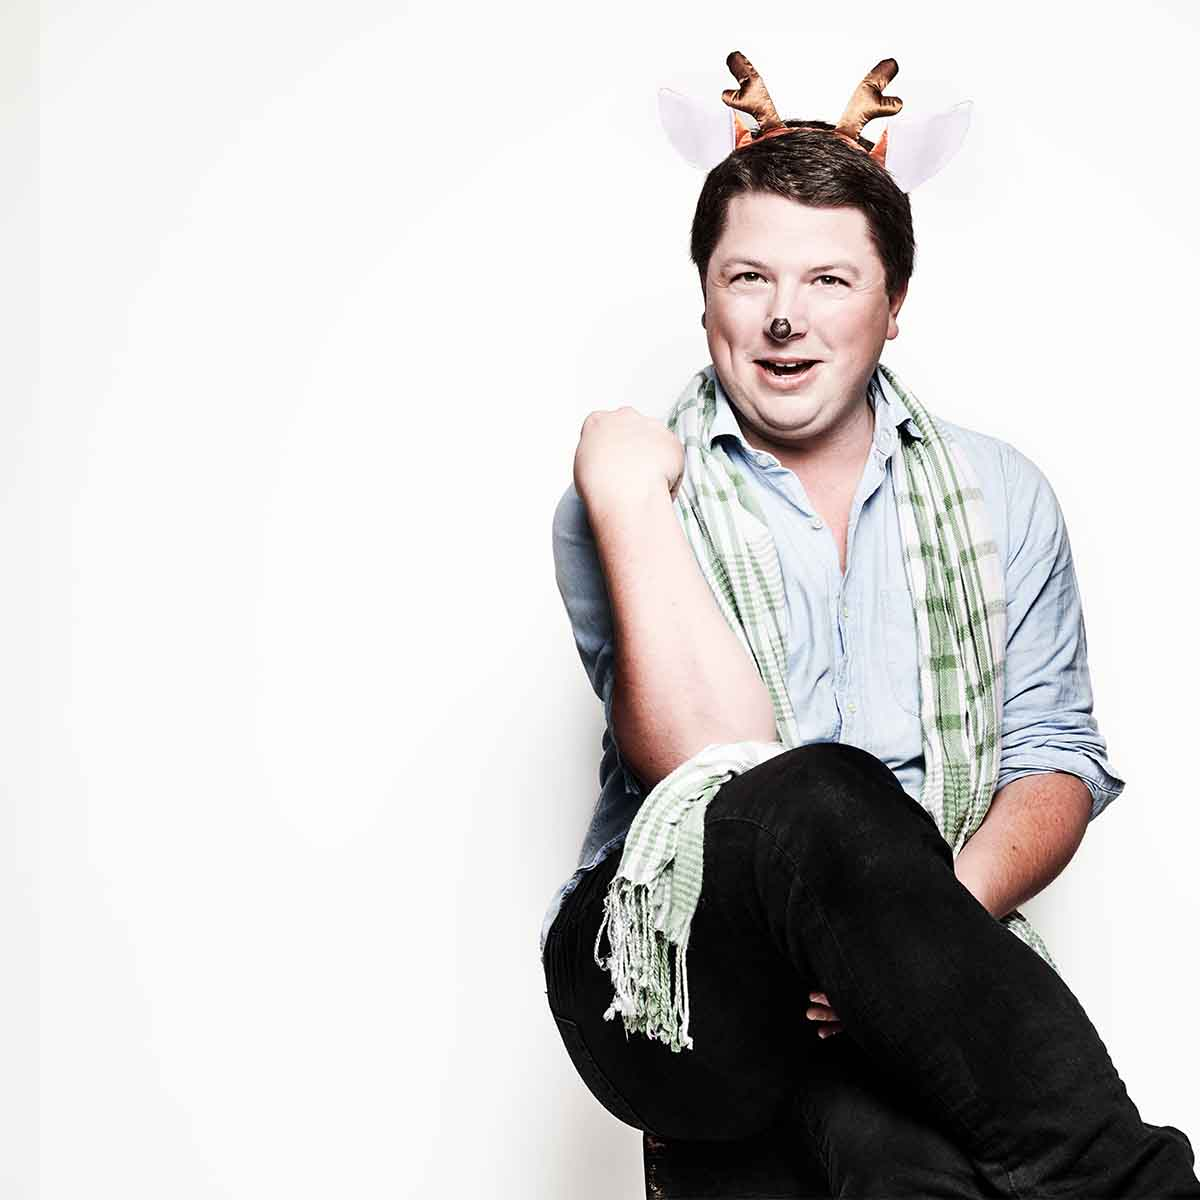 Patrick Bryant as Cupid in The 8: The Reindeer Monologues